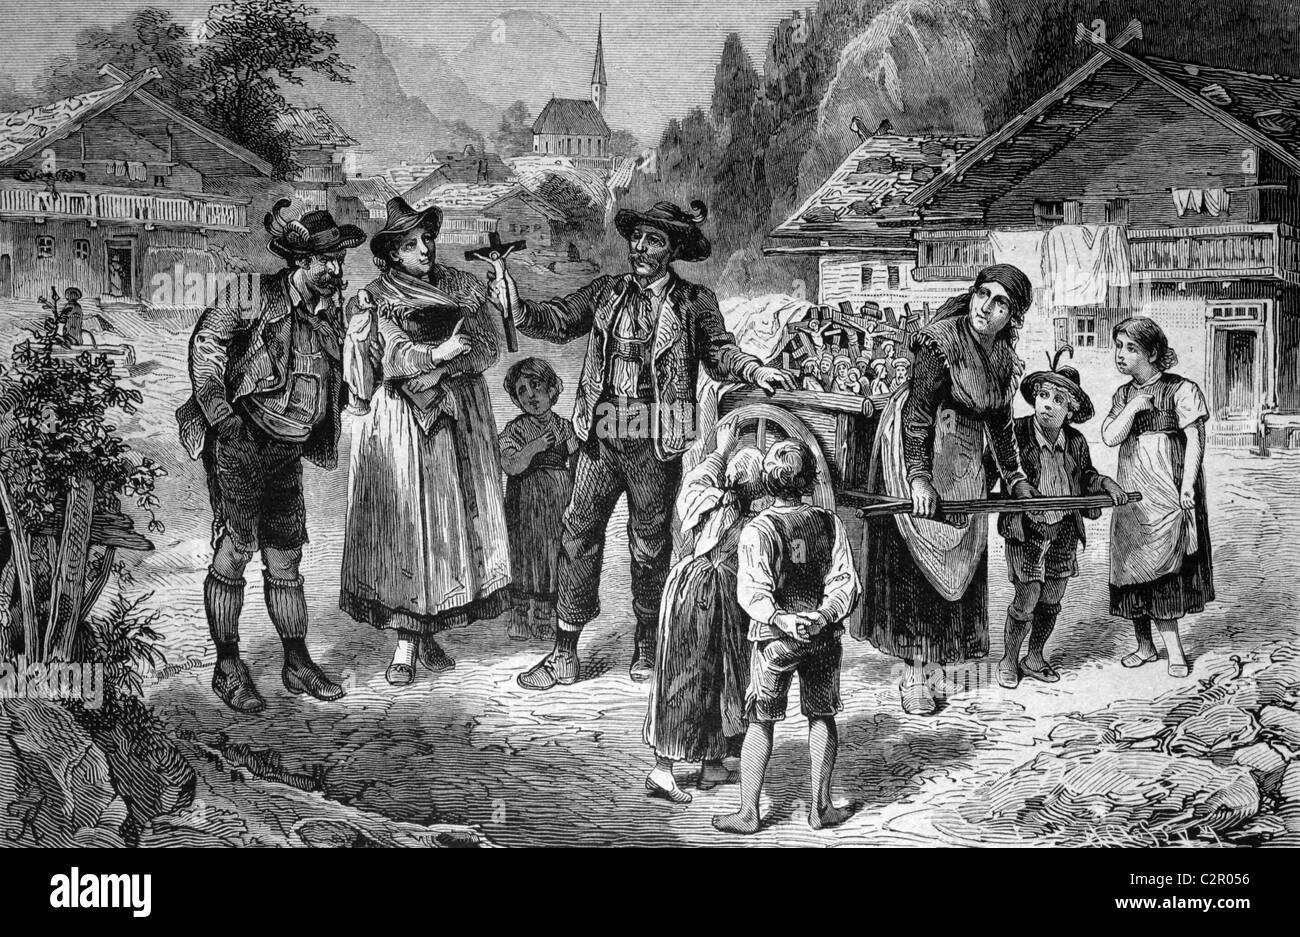 Merchant selling religious items in Tyrol, Austria, historical illustration, circa 1886 - Stock Image